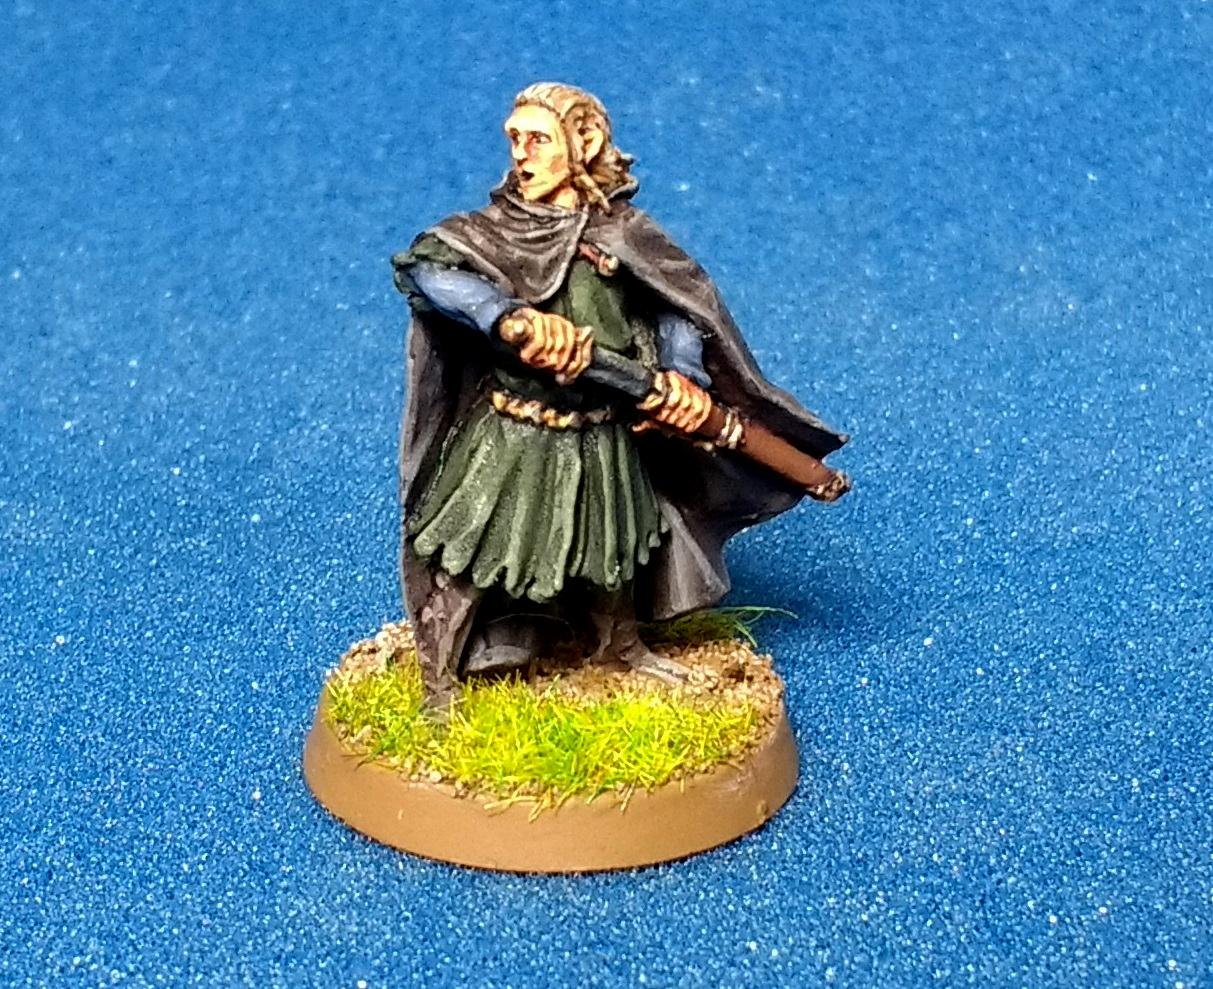 Elves, Gildor Inglorion, Lord Of The Rings